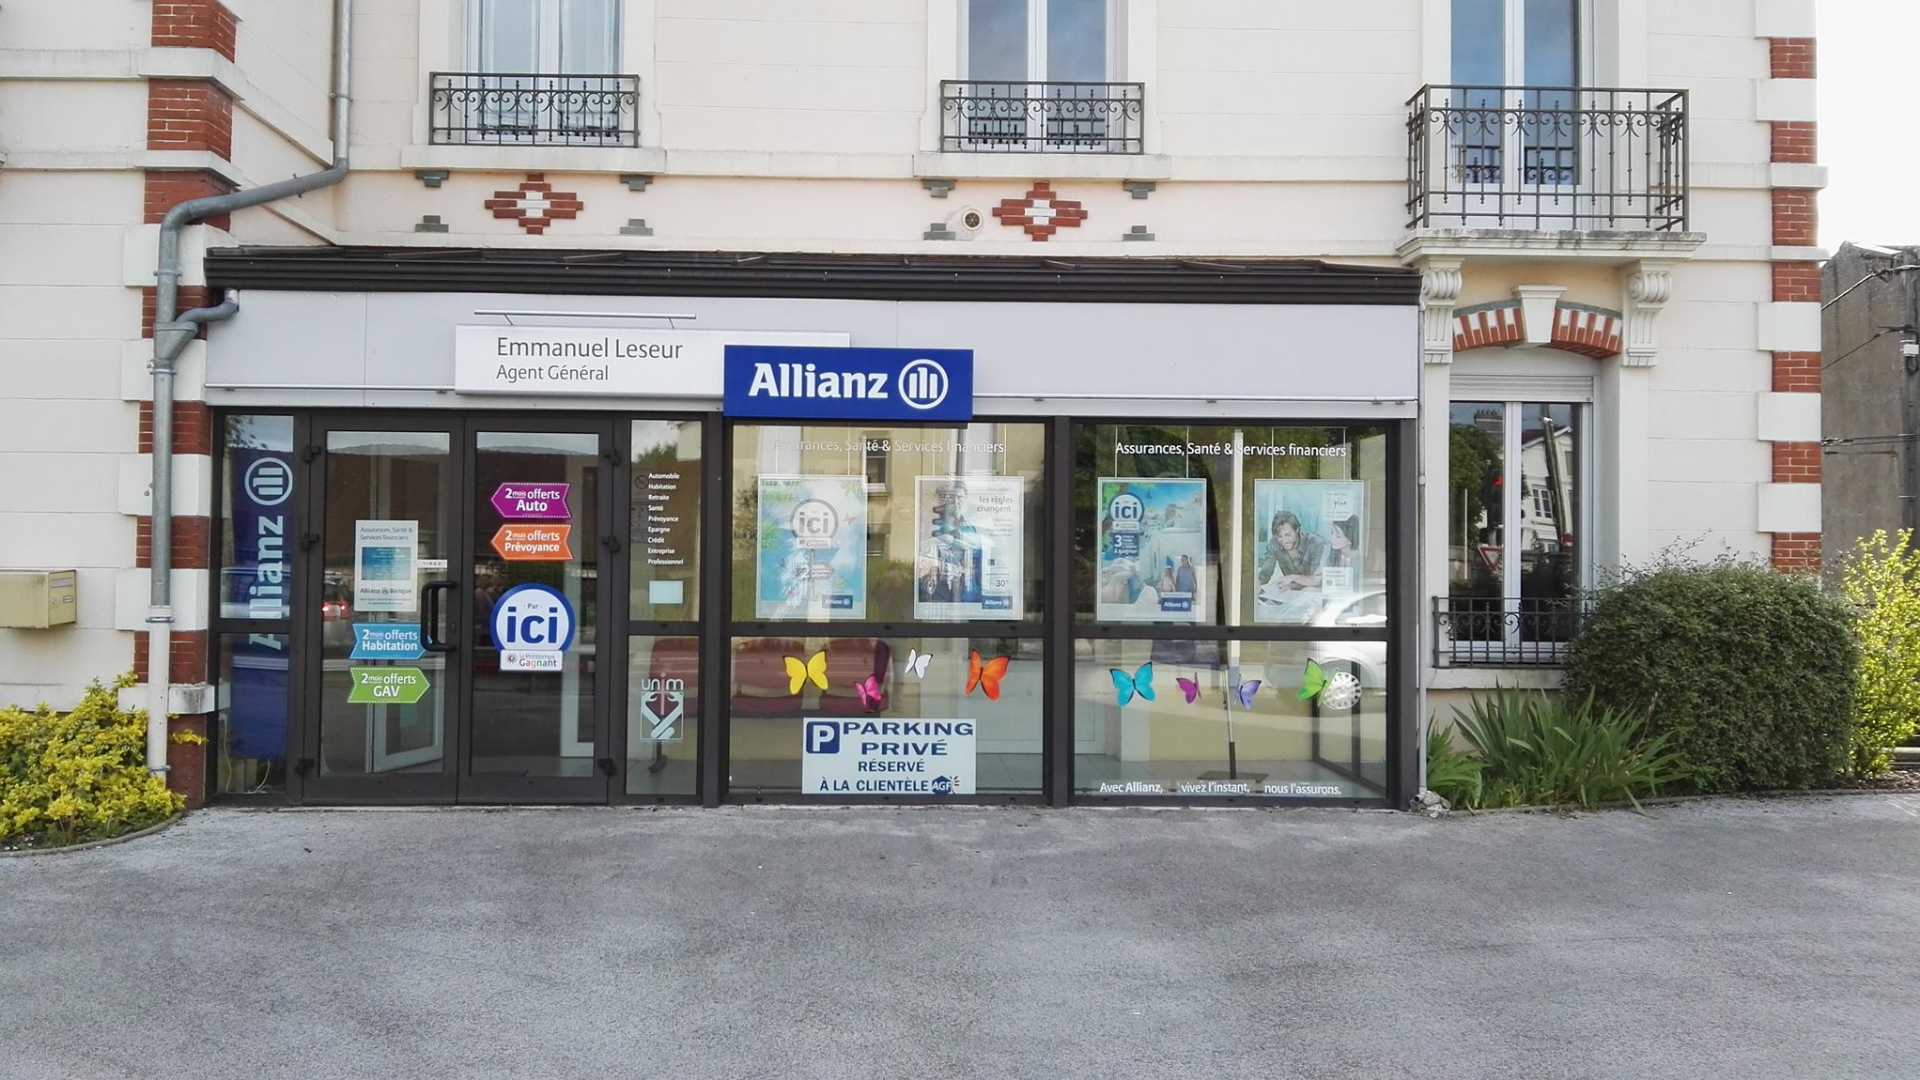 Allianz Chaumont prefecture - Emmanuel LESEUR